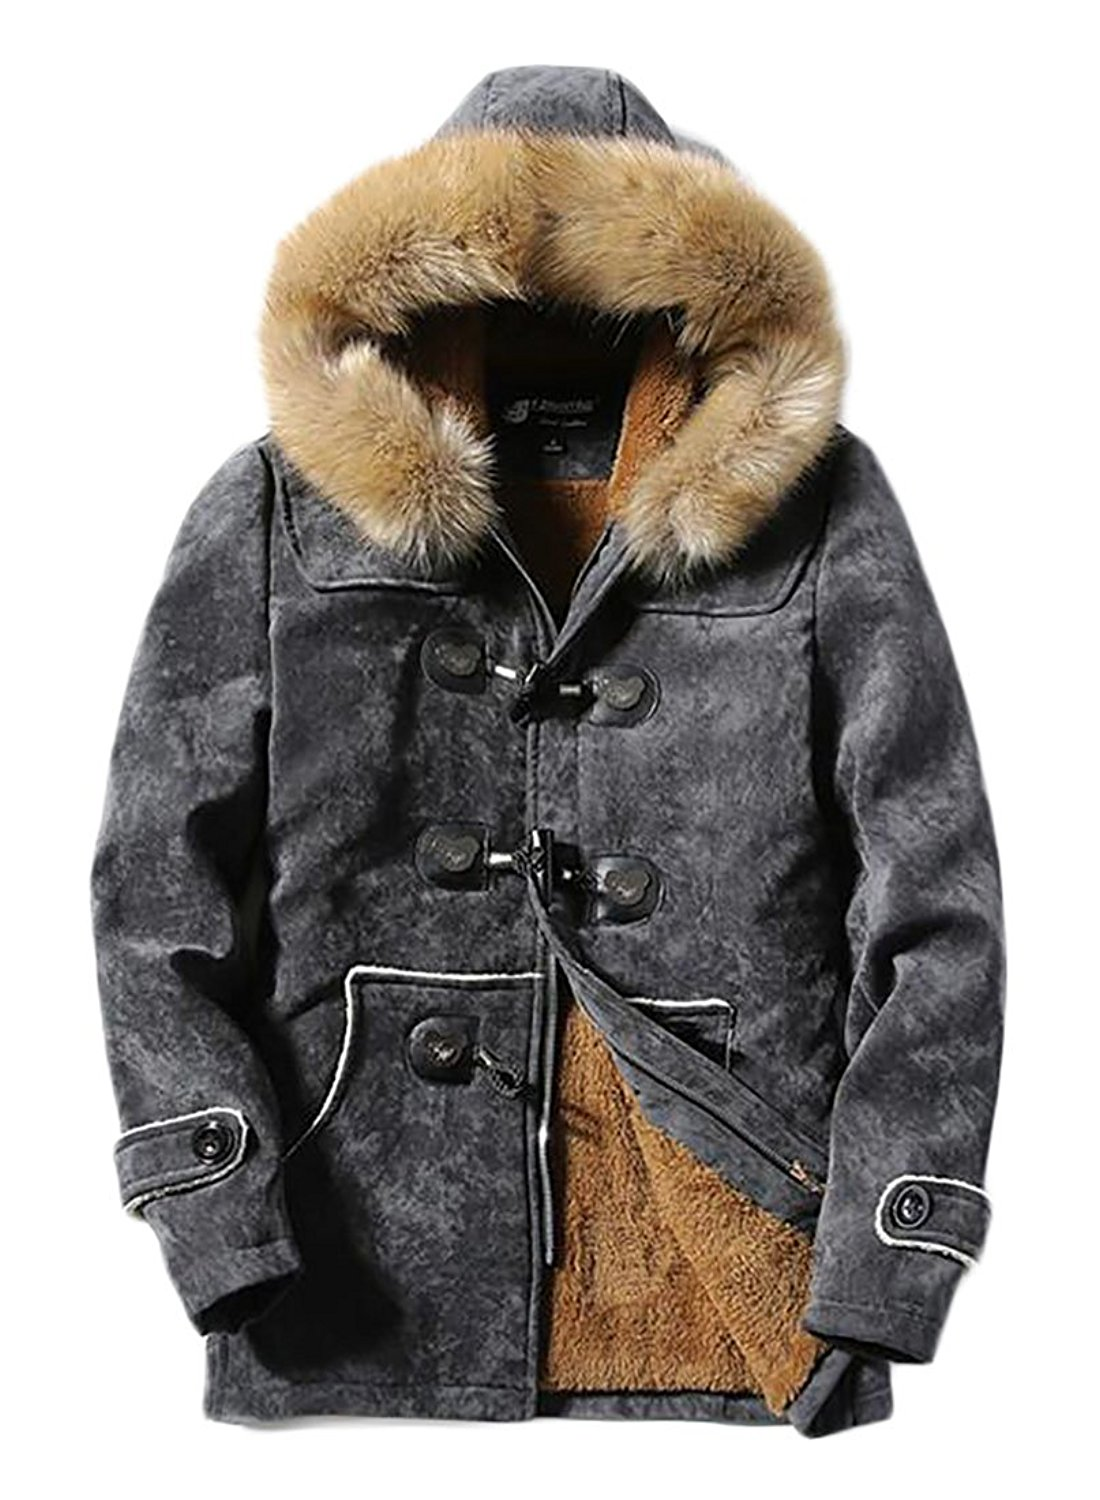 ONTBYB Womens Casual Faux-Fur Collar Parka Quilted Thicken Zip Down Jacket Coat